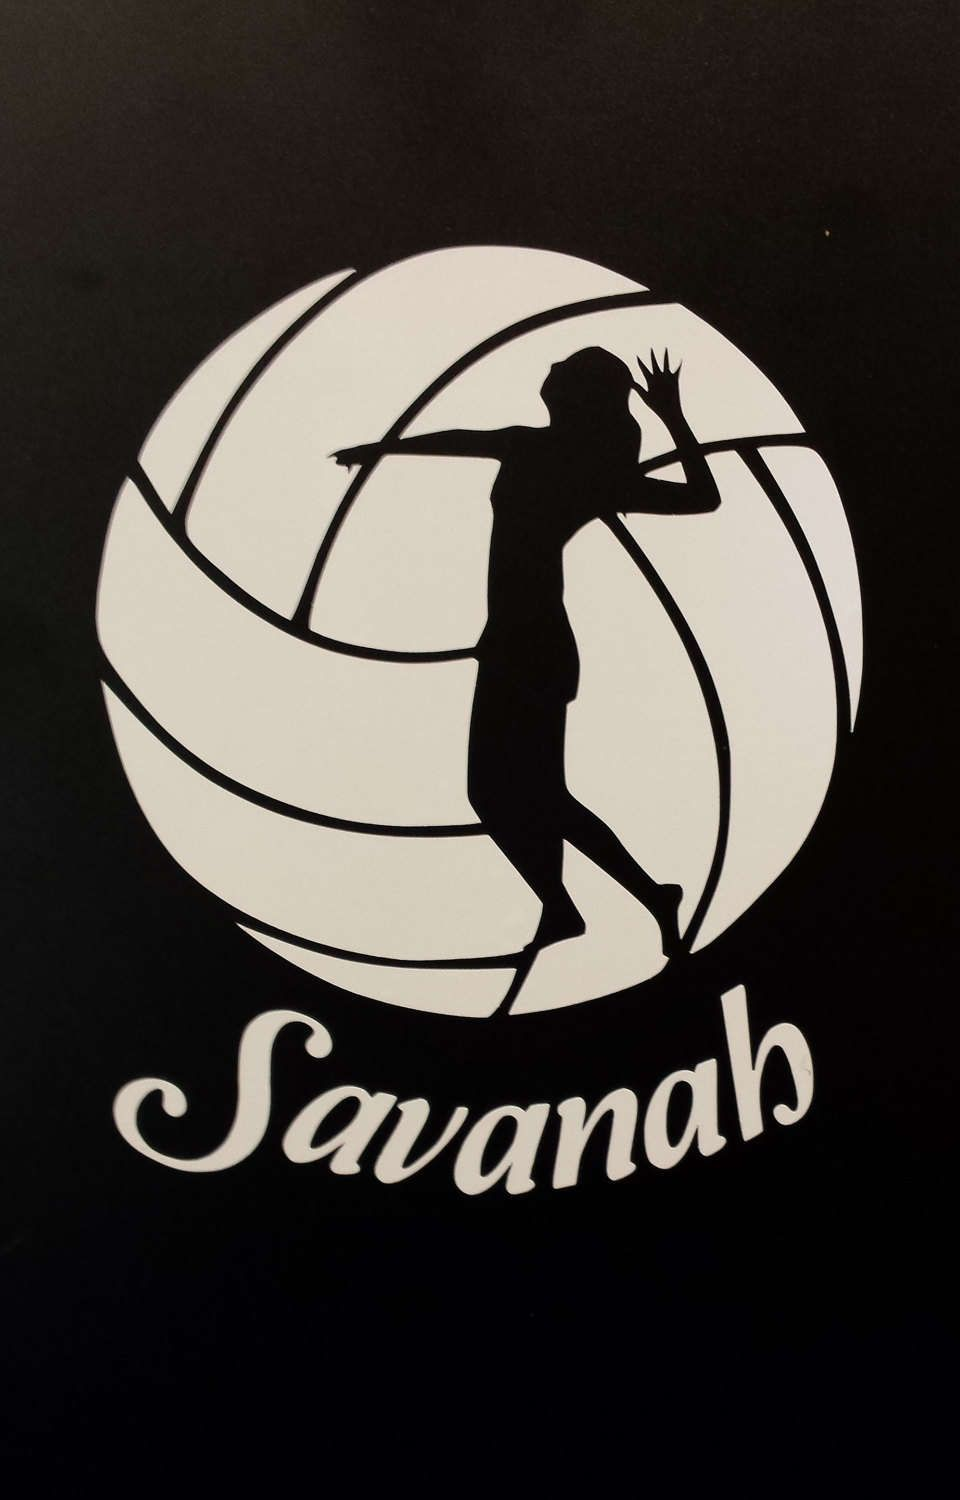 Volleyball Decal Volleyball Sticker Personalized Volleyball Decal Sport Bag Decal Water Bottle Decal Window Decal Car Decal Laptop By Mnmadewreat Volejbol